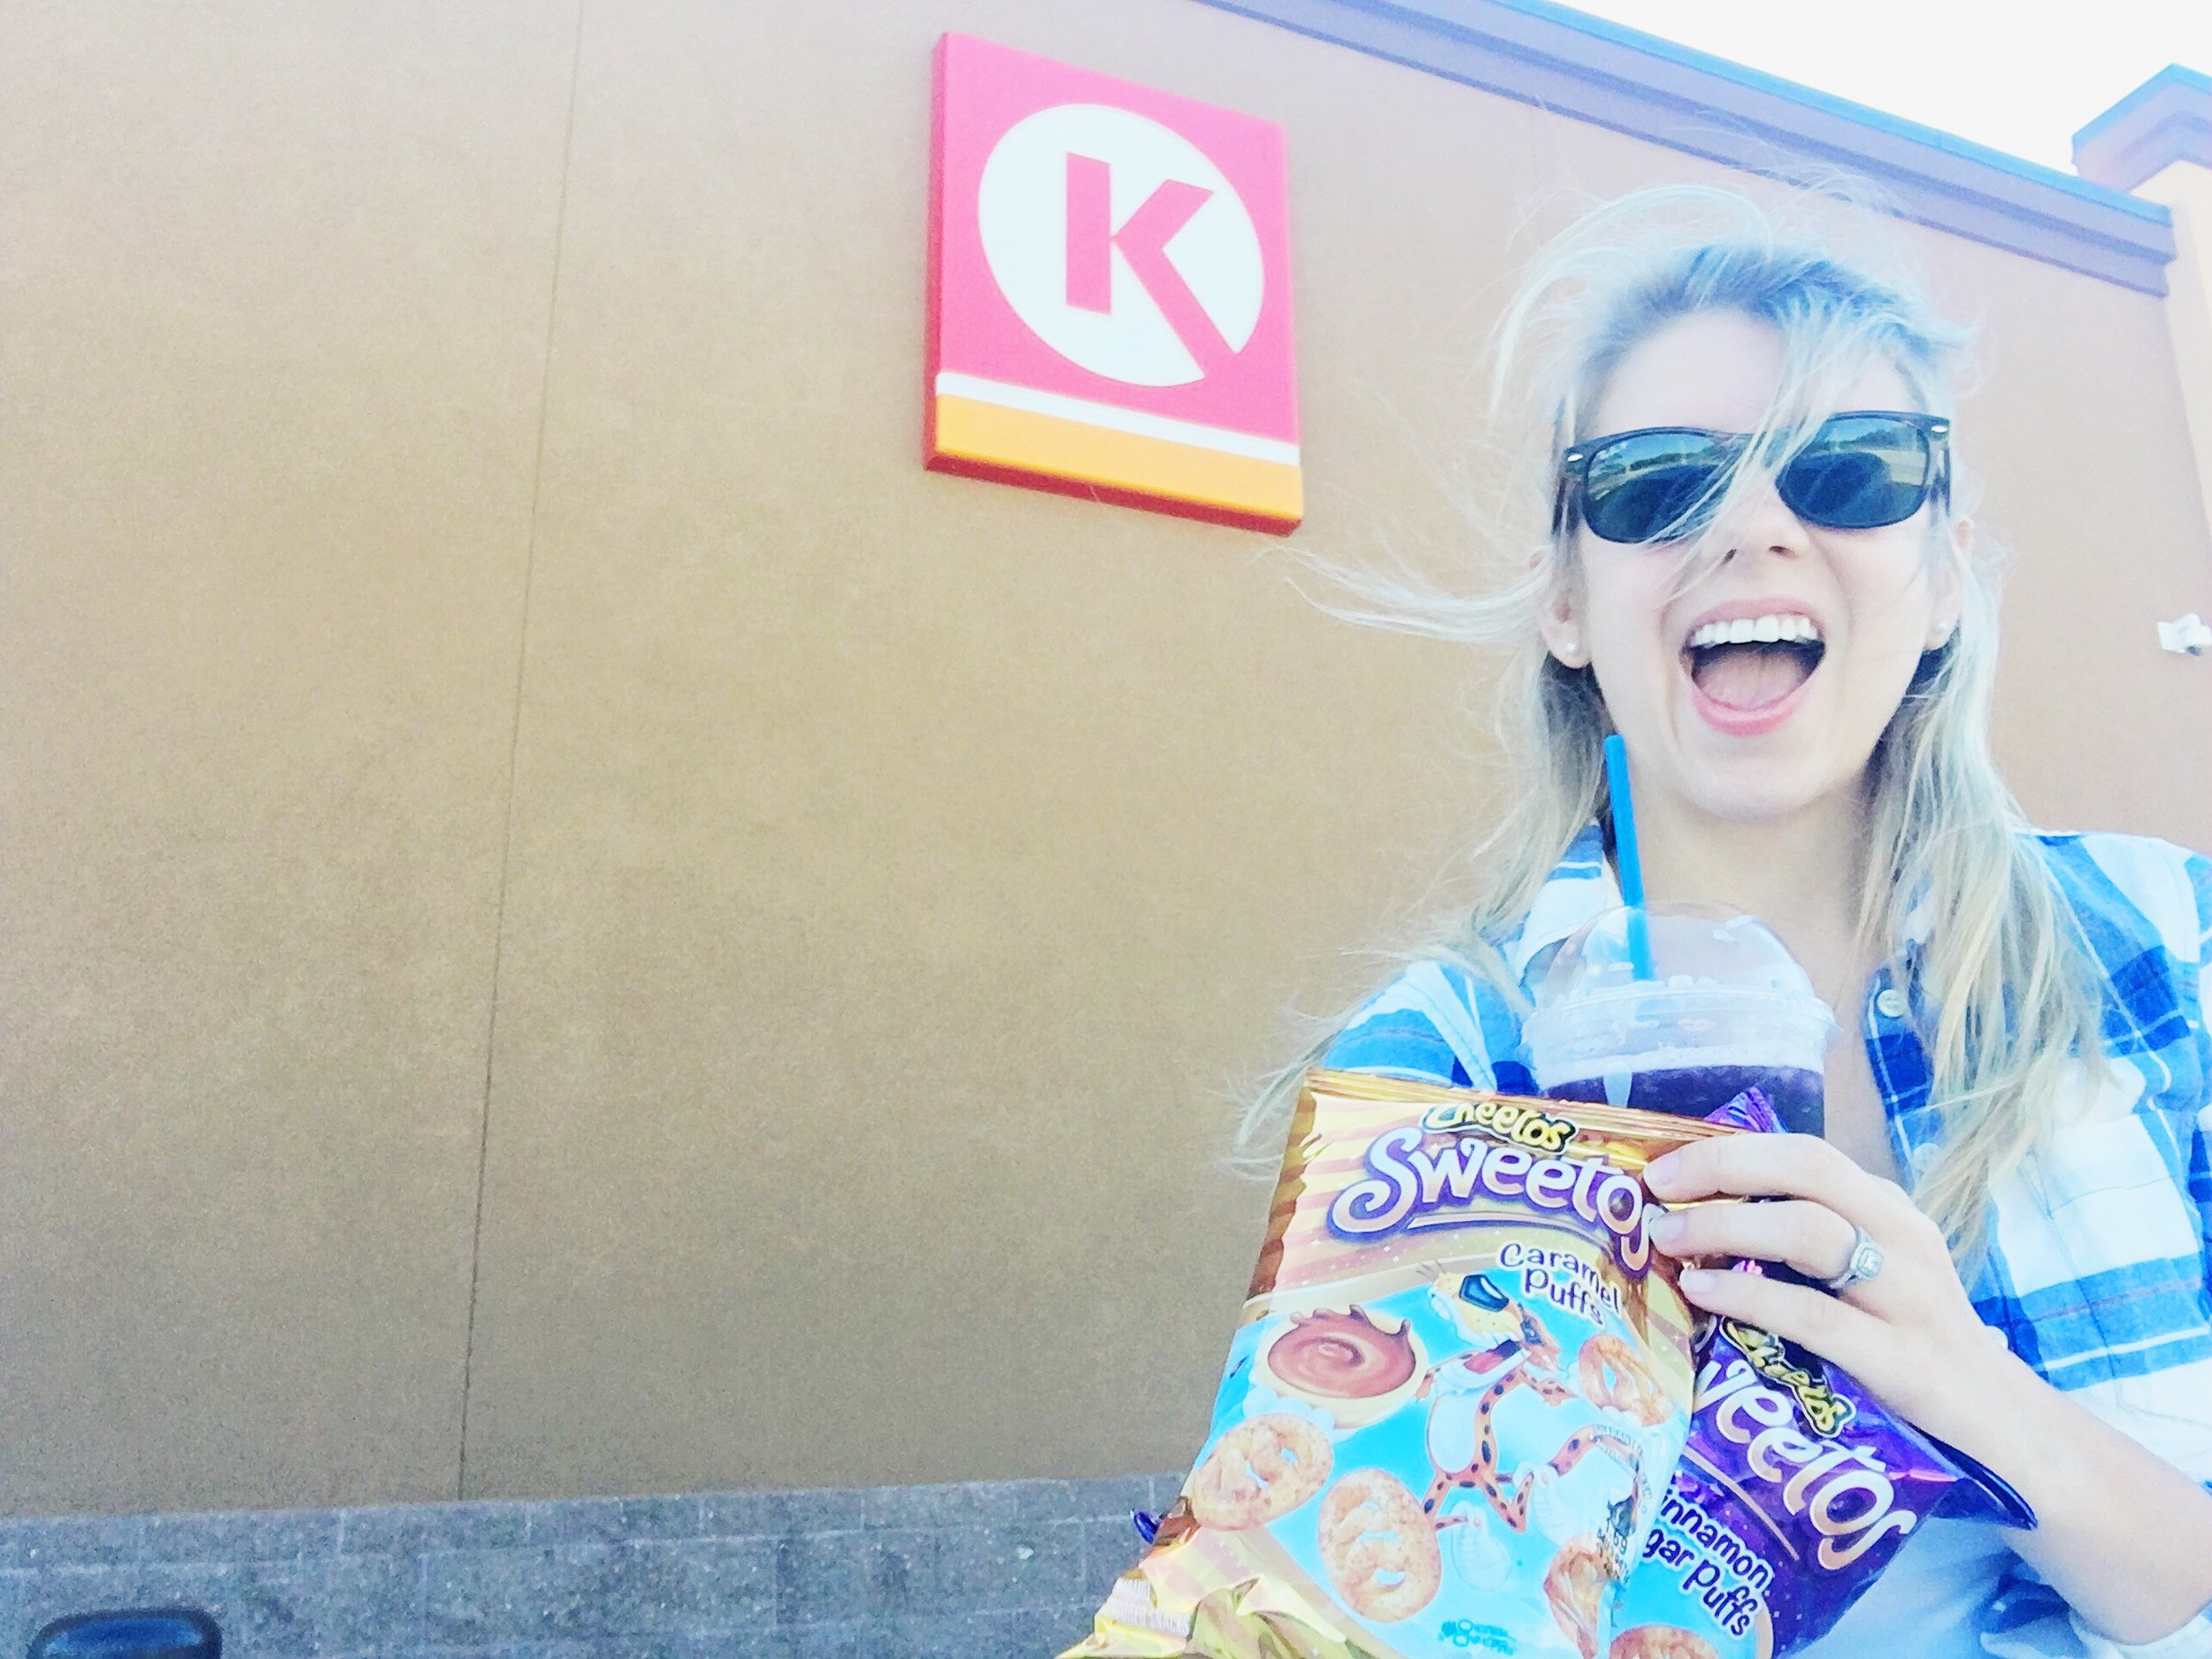 6 Tips for an Awesome Day Trip - Circle K - Wander Dust Blog (2).JPG